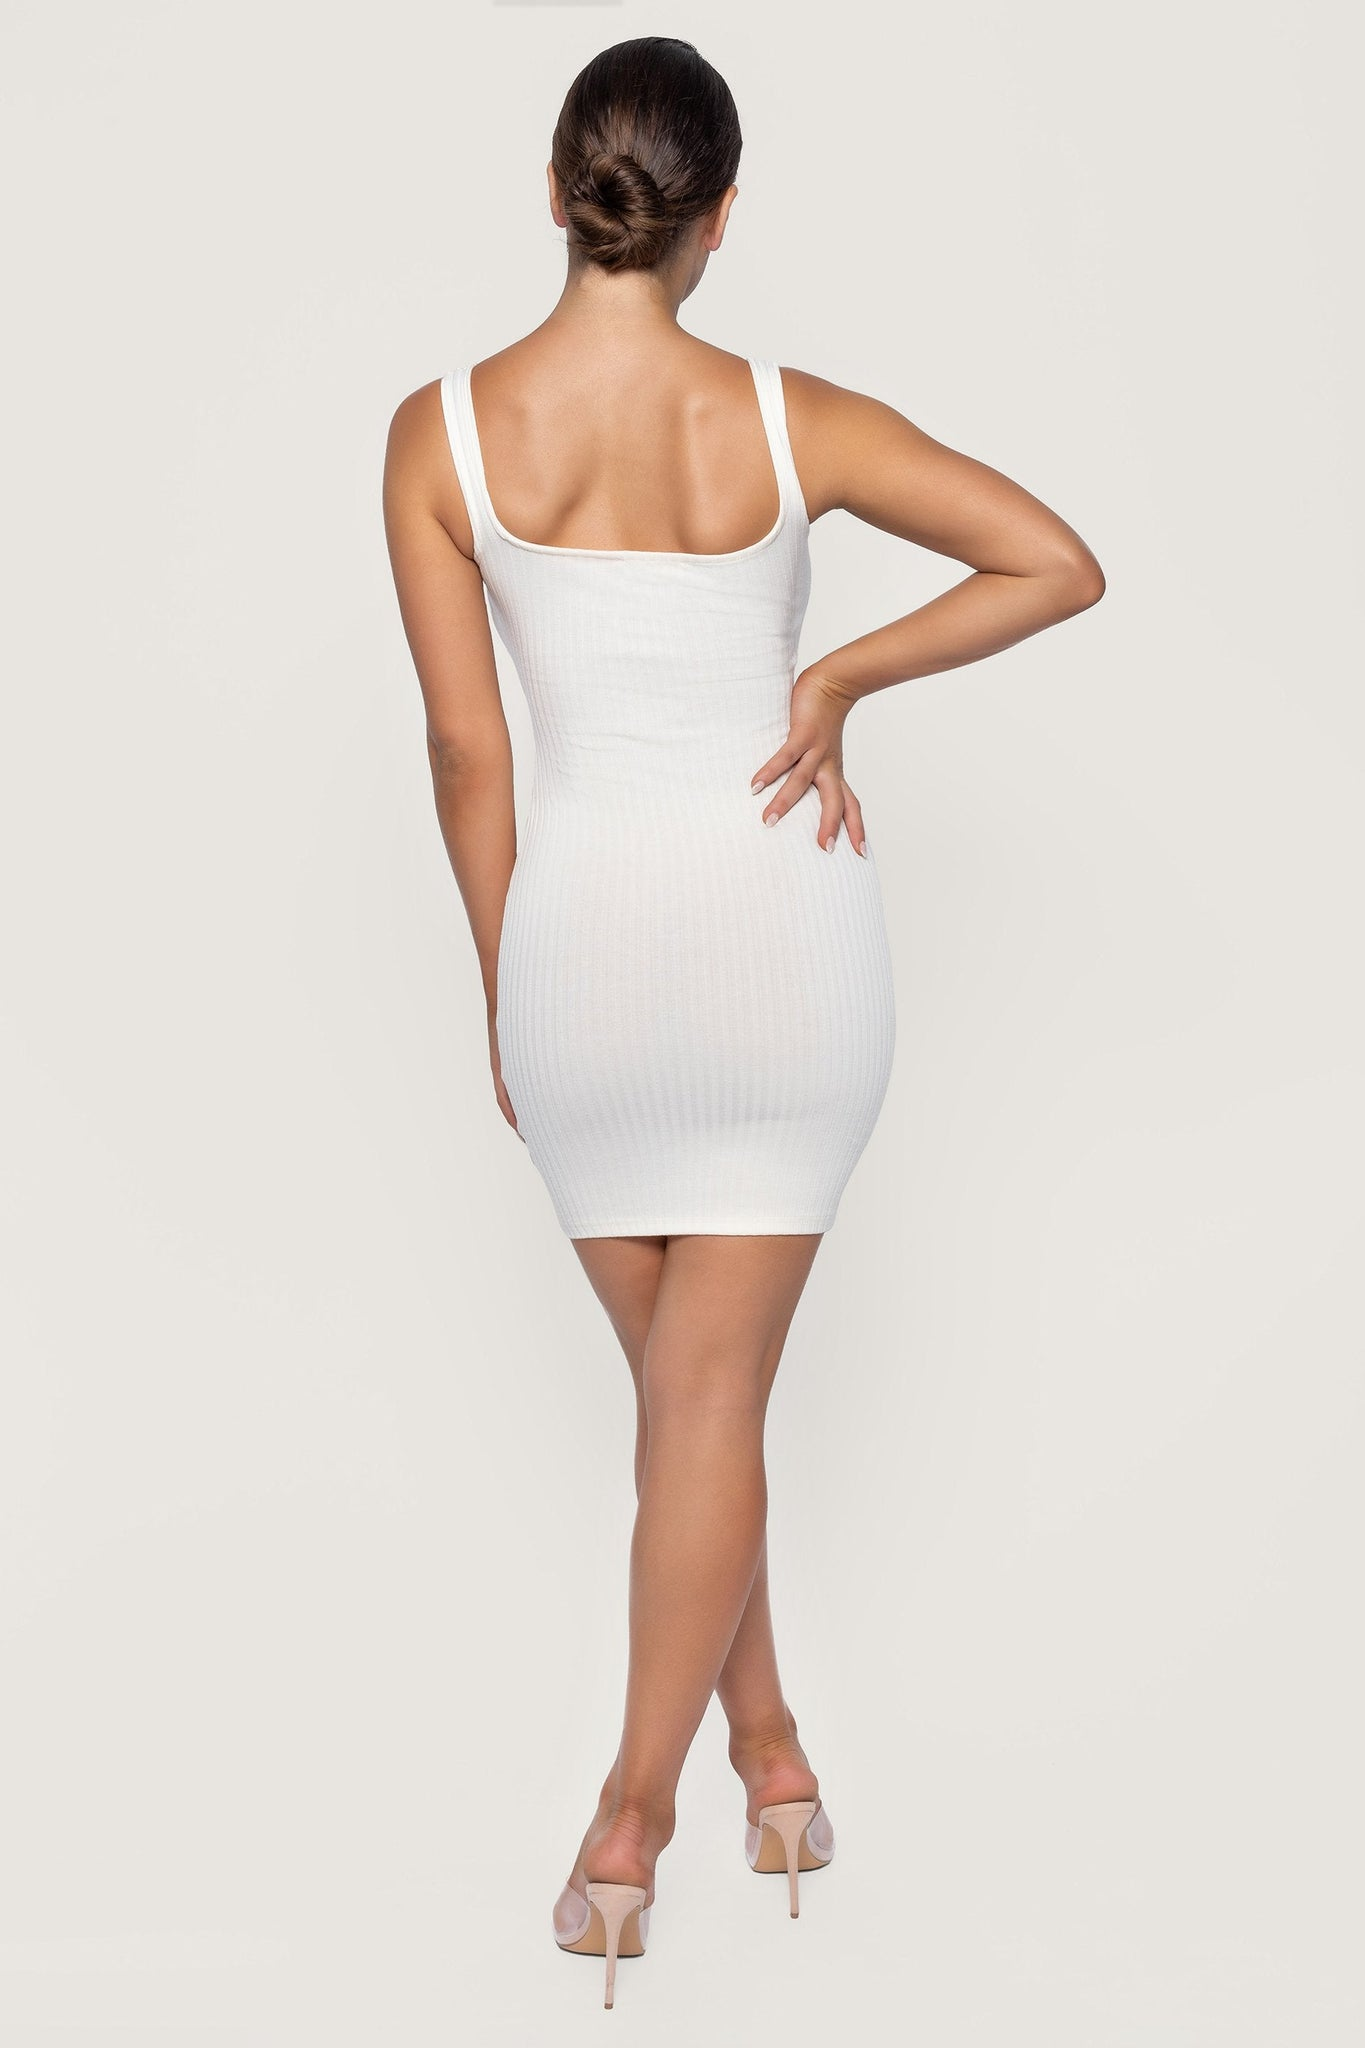 Valencia Tie Mini Dress - Ivory - MESHKI